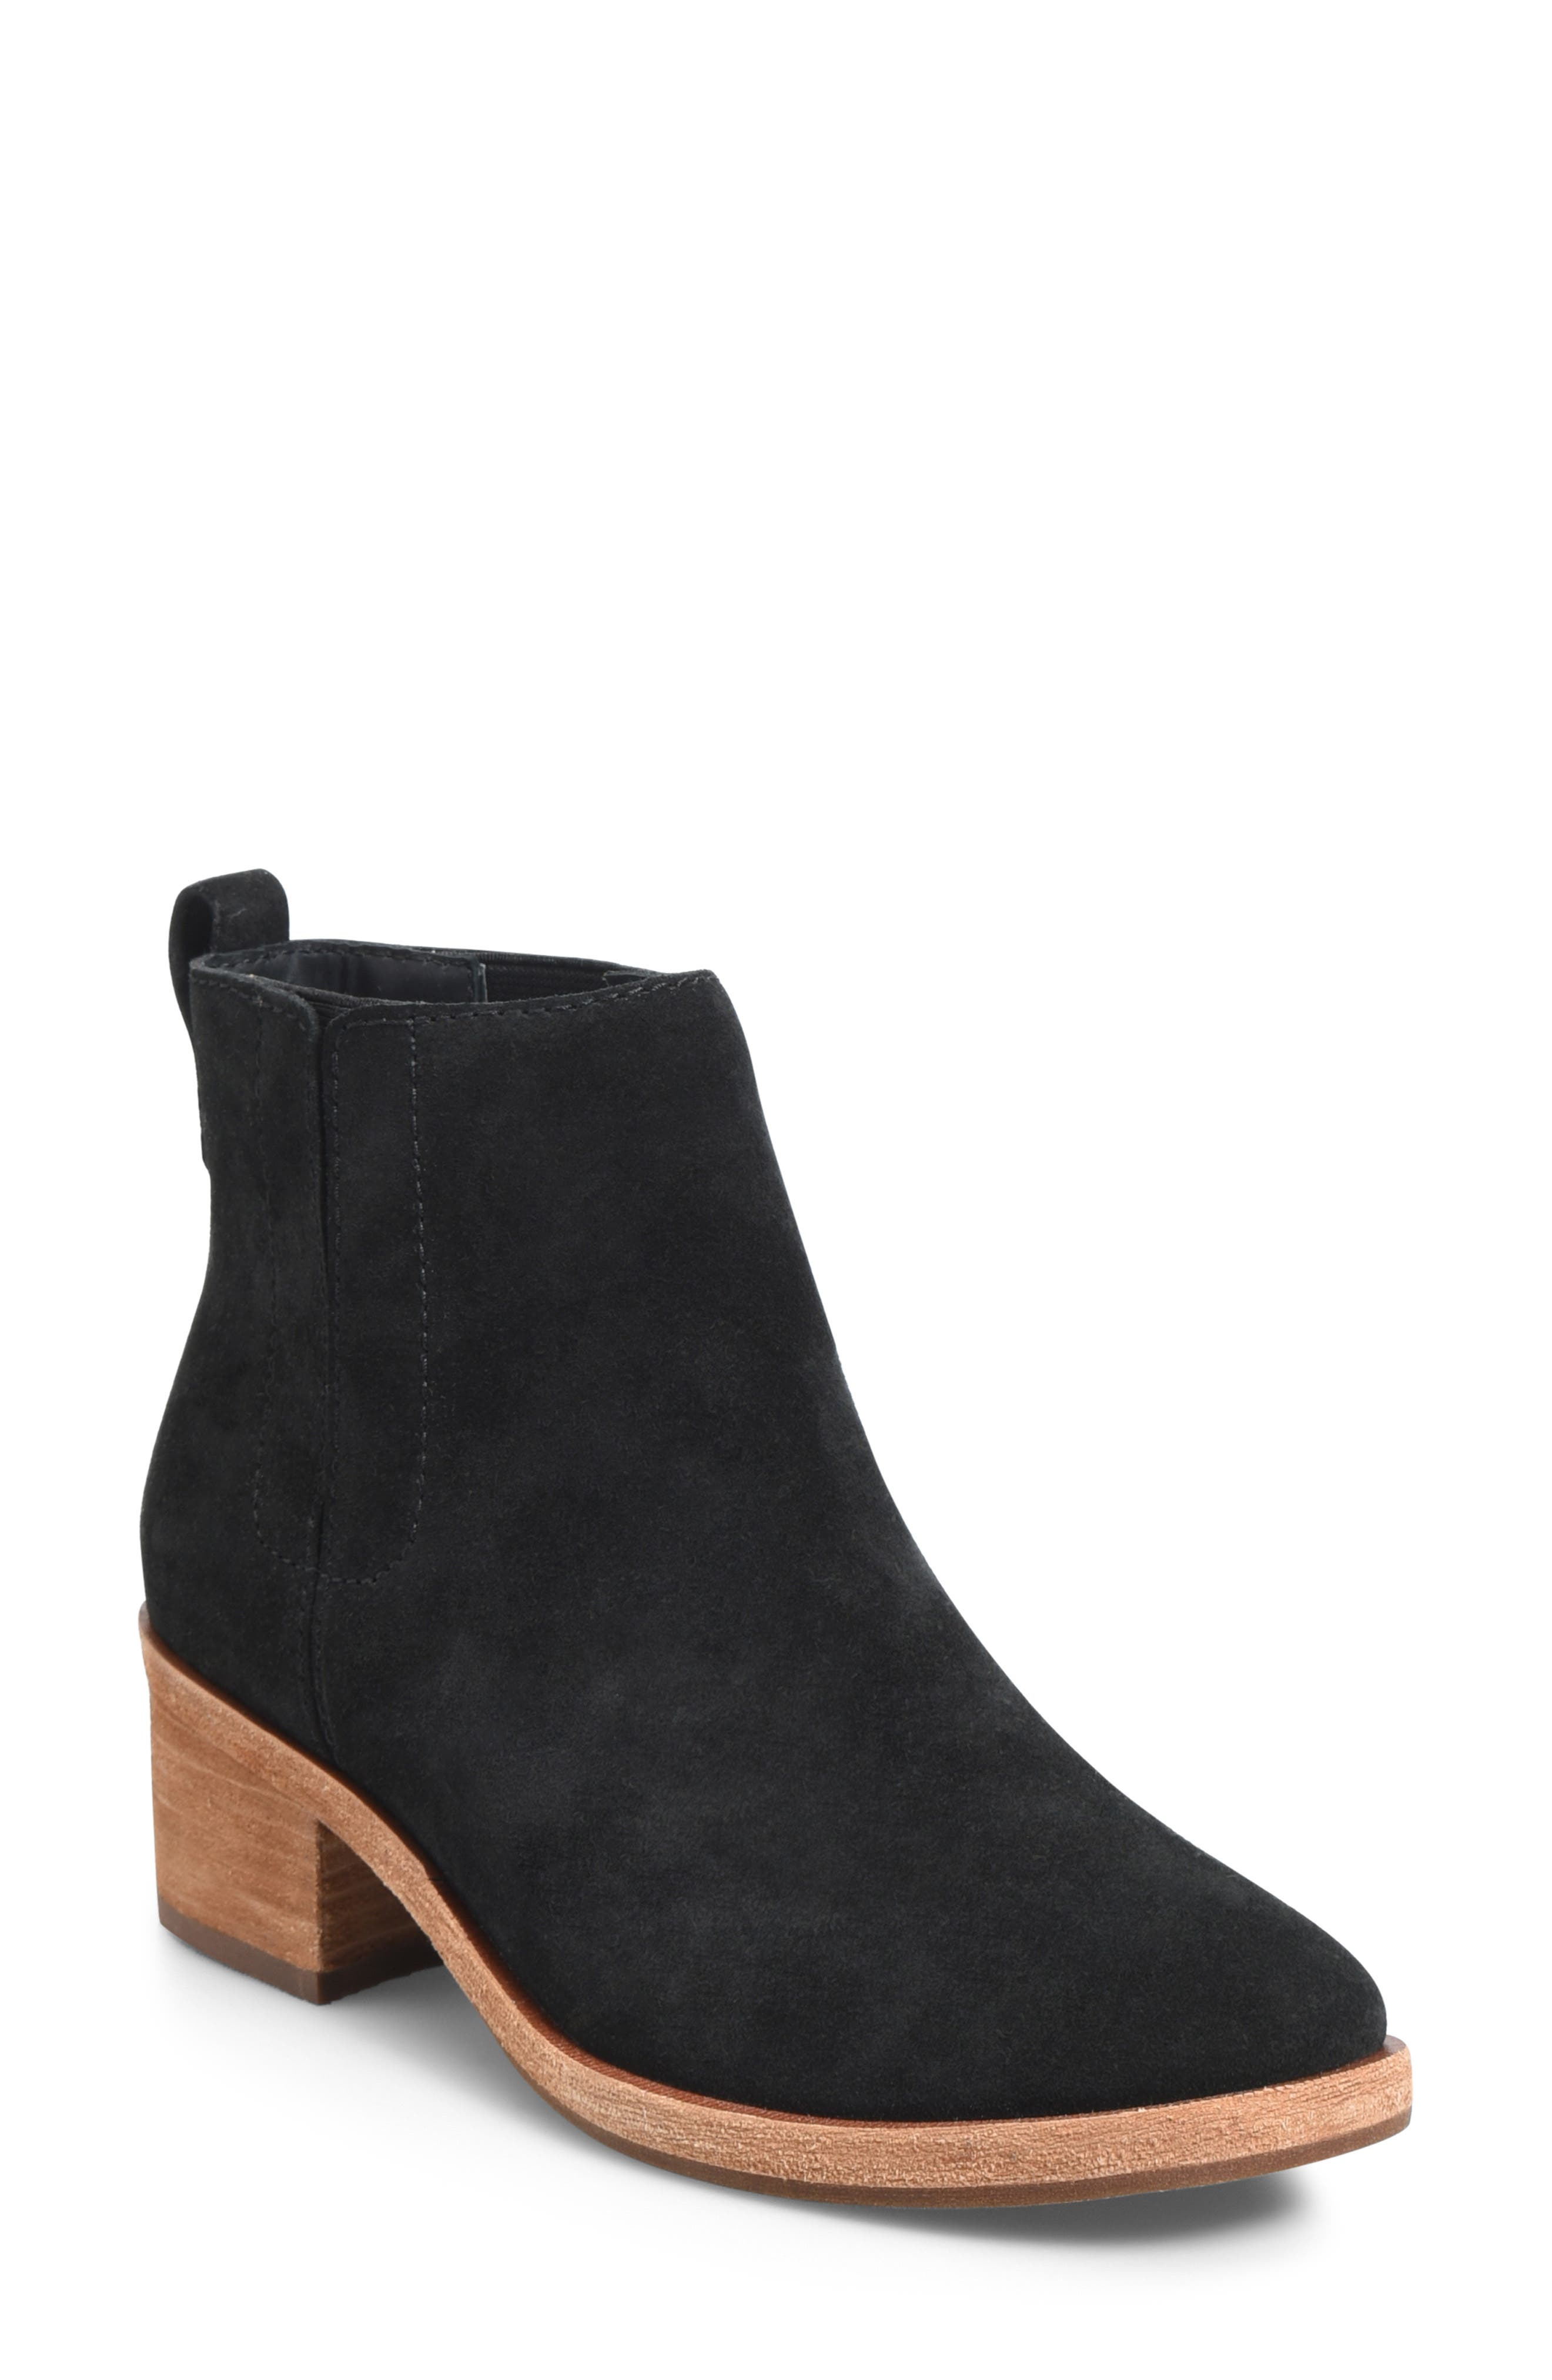 KORK-EASE<SUP>®</SUP> Mindo Chelsea Bootie, Main, color, BLACK SUEDE